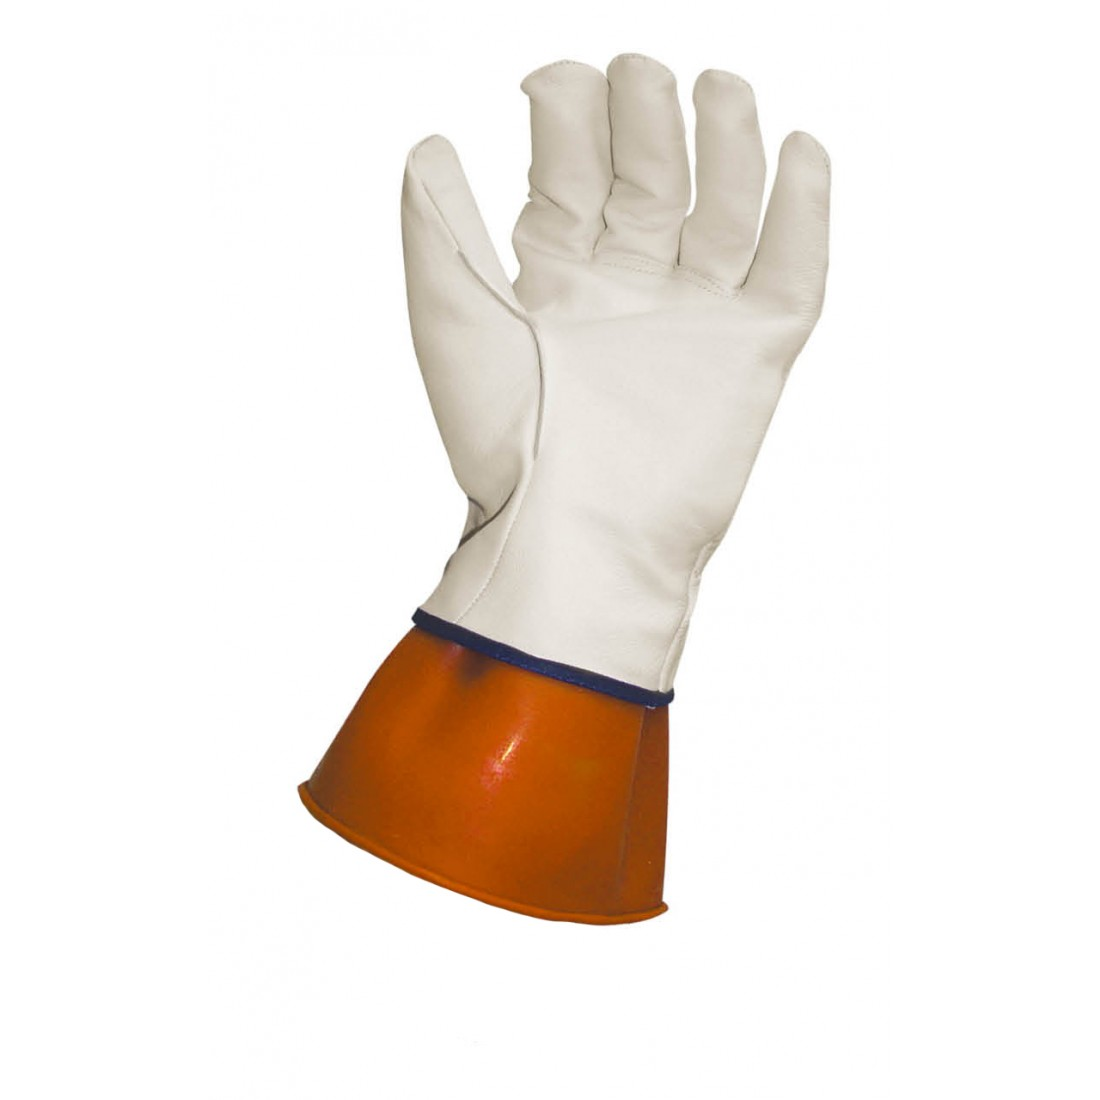 Leather_Protector_Gloves_SAS_Safety